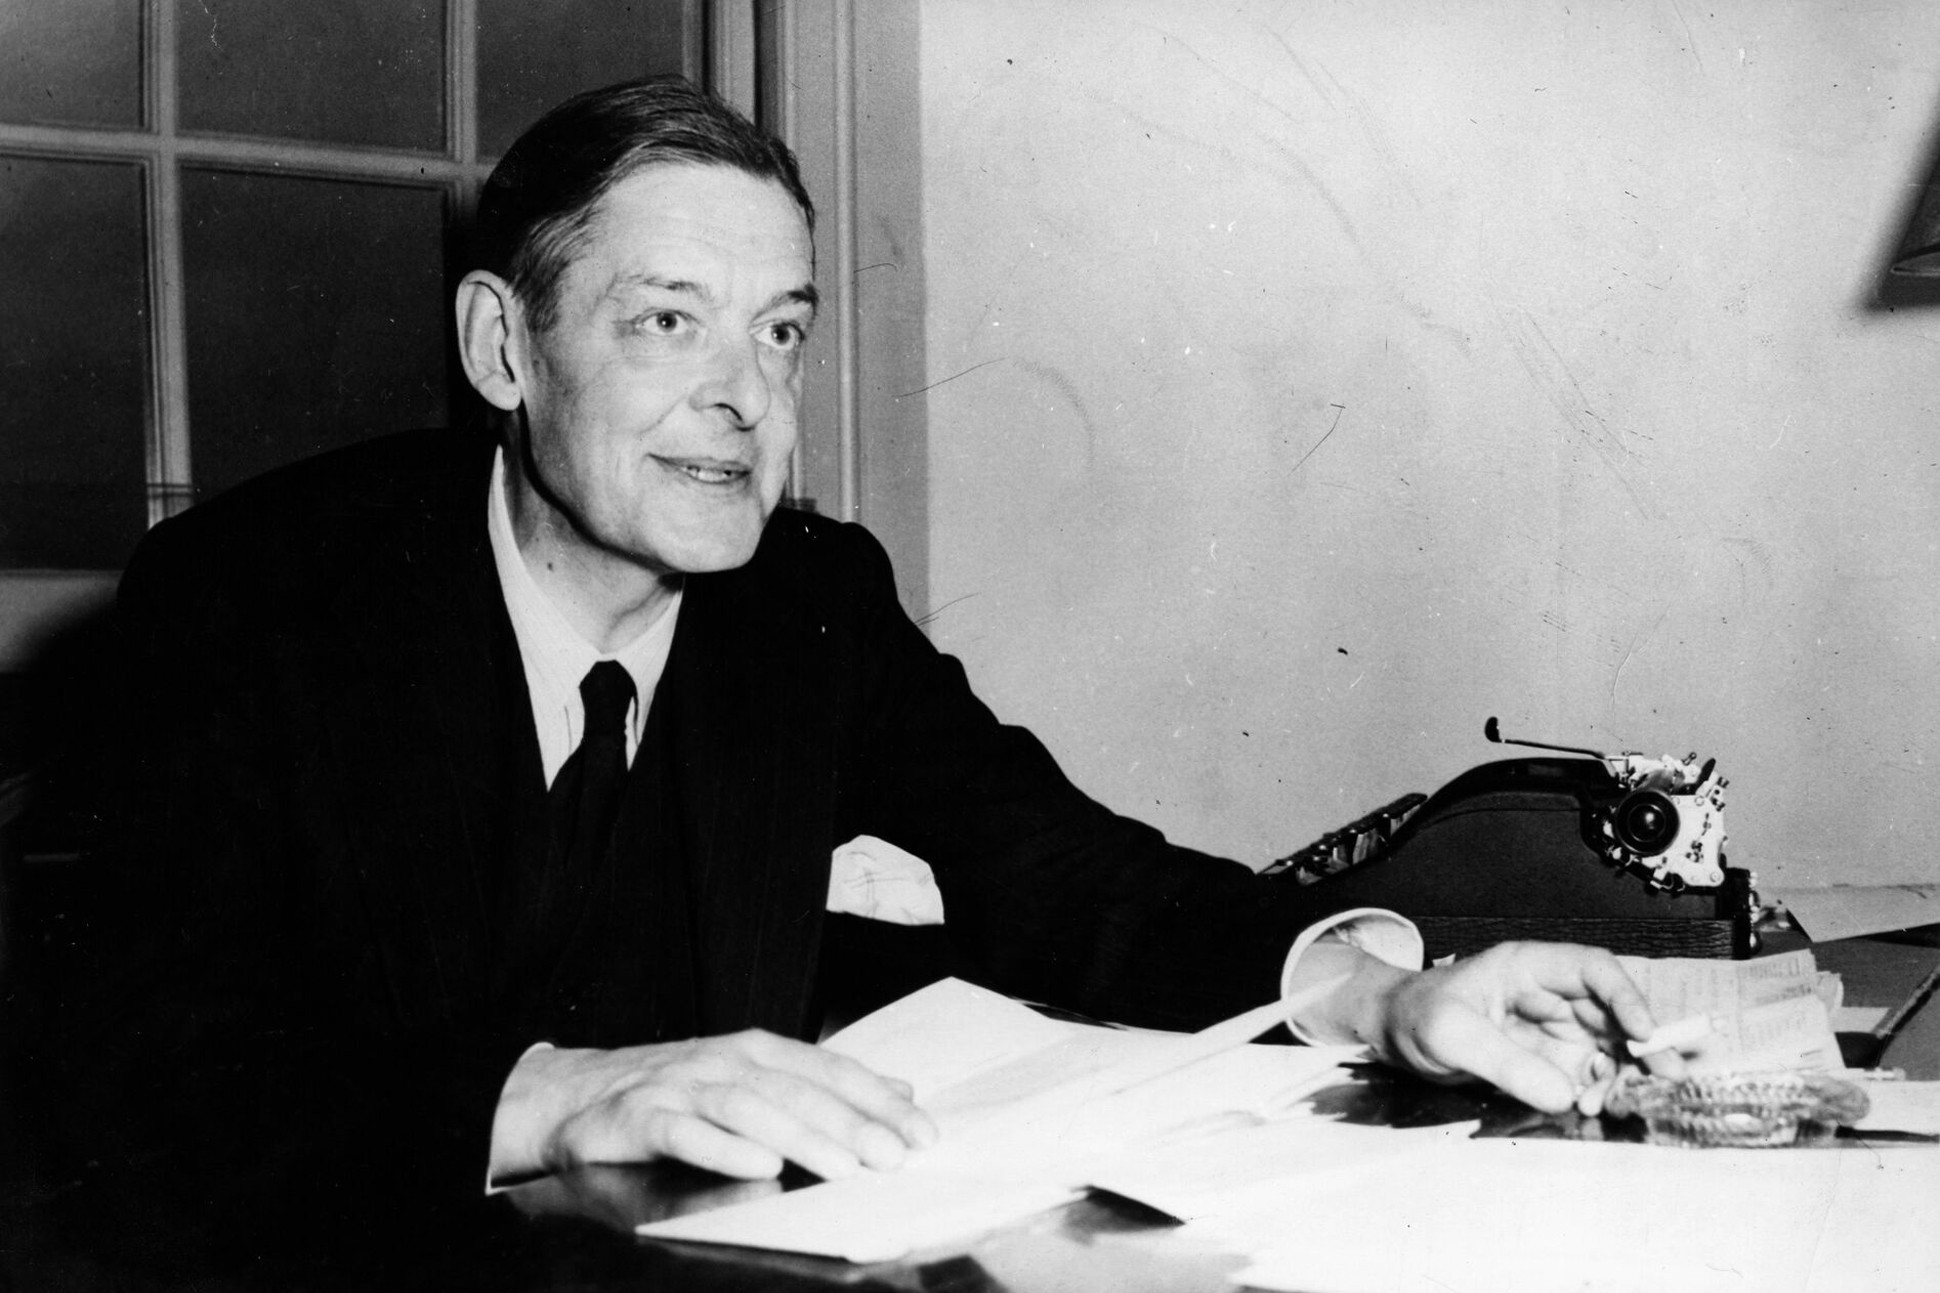 t s eliot Ts eliot: apocalypse now ts eliot ranks with william butler yeats as the greatest english language poet of the 20th century and was certainly the most influential he was born thomas stearns eliot into the bosom of a respectable middle class family on september 26, 1888 in st louis, missouri.